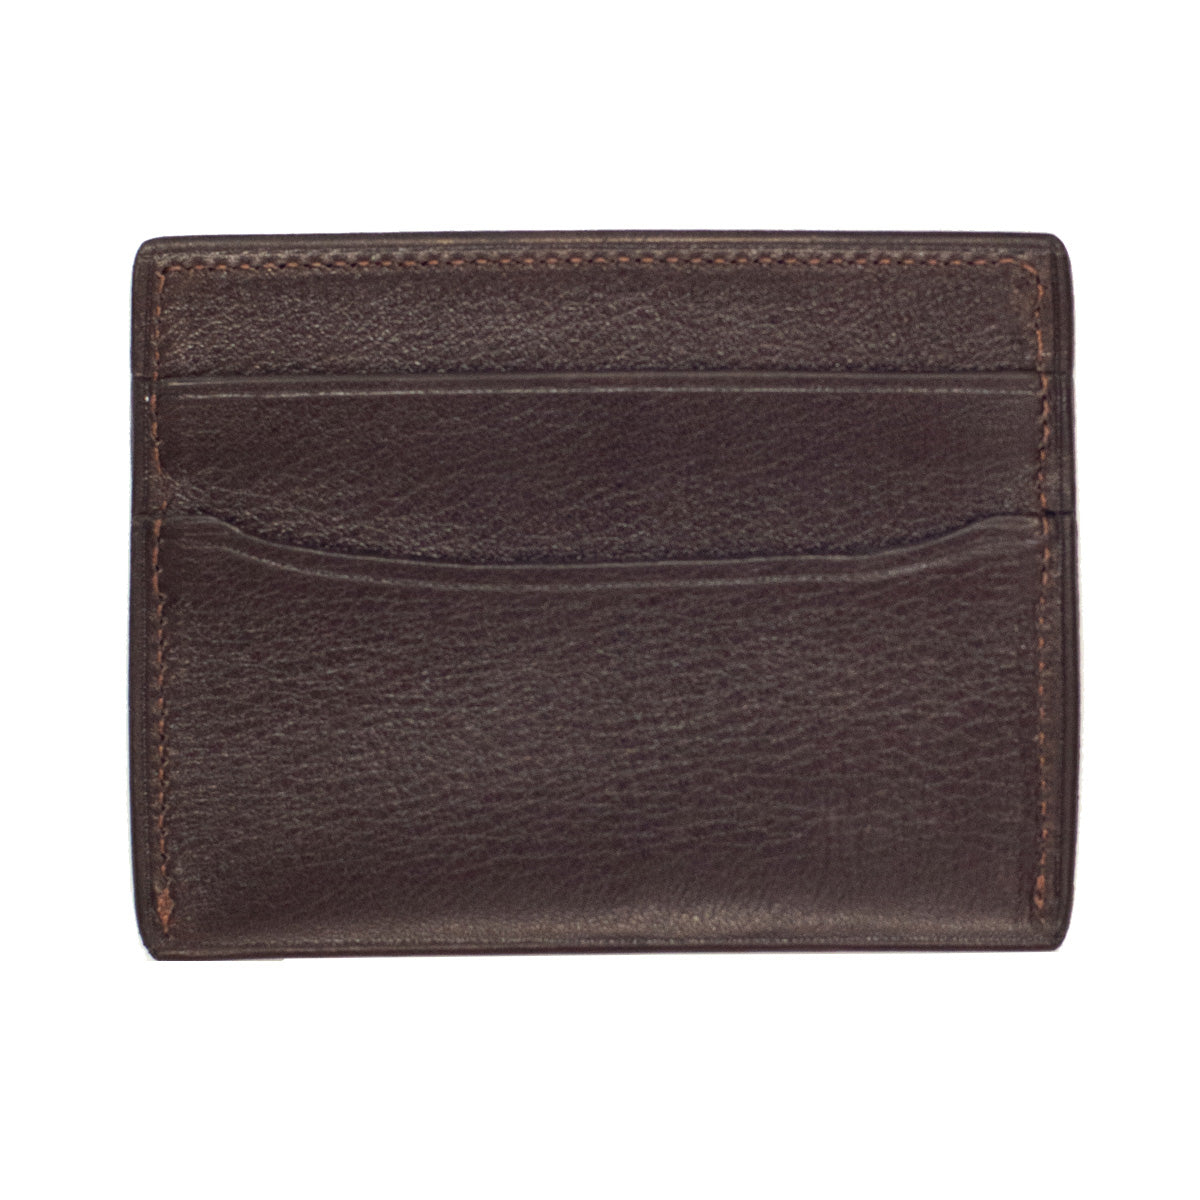 Handmade Wallet in Brown Leather